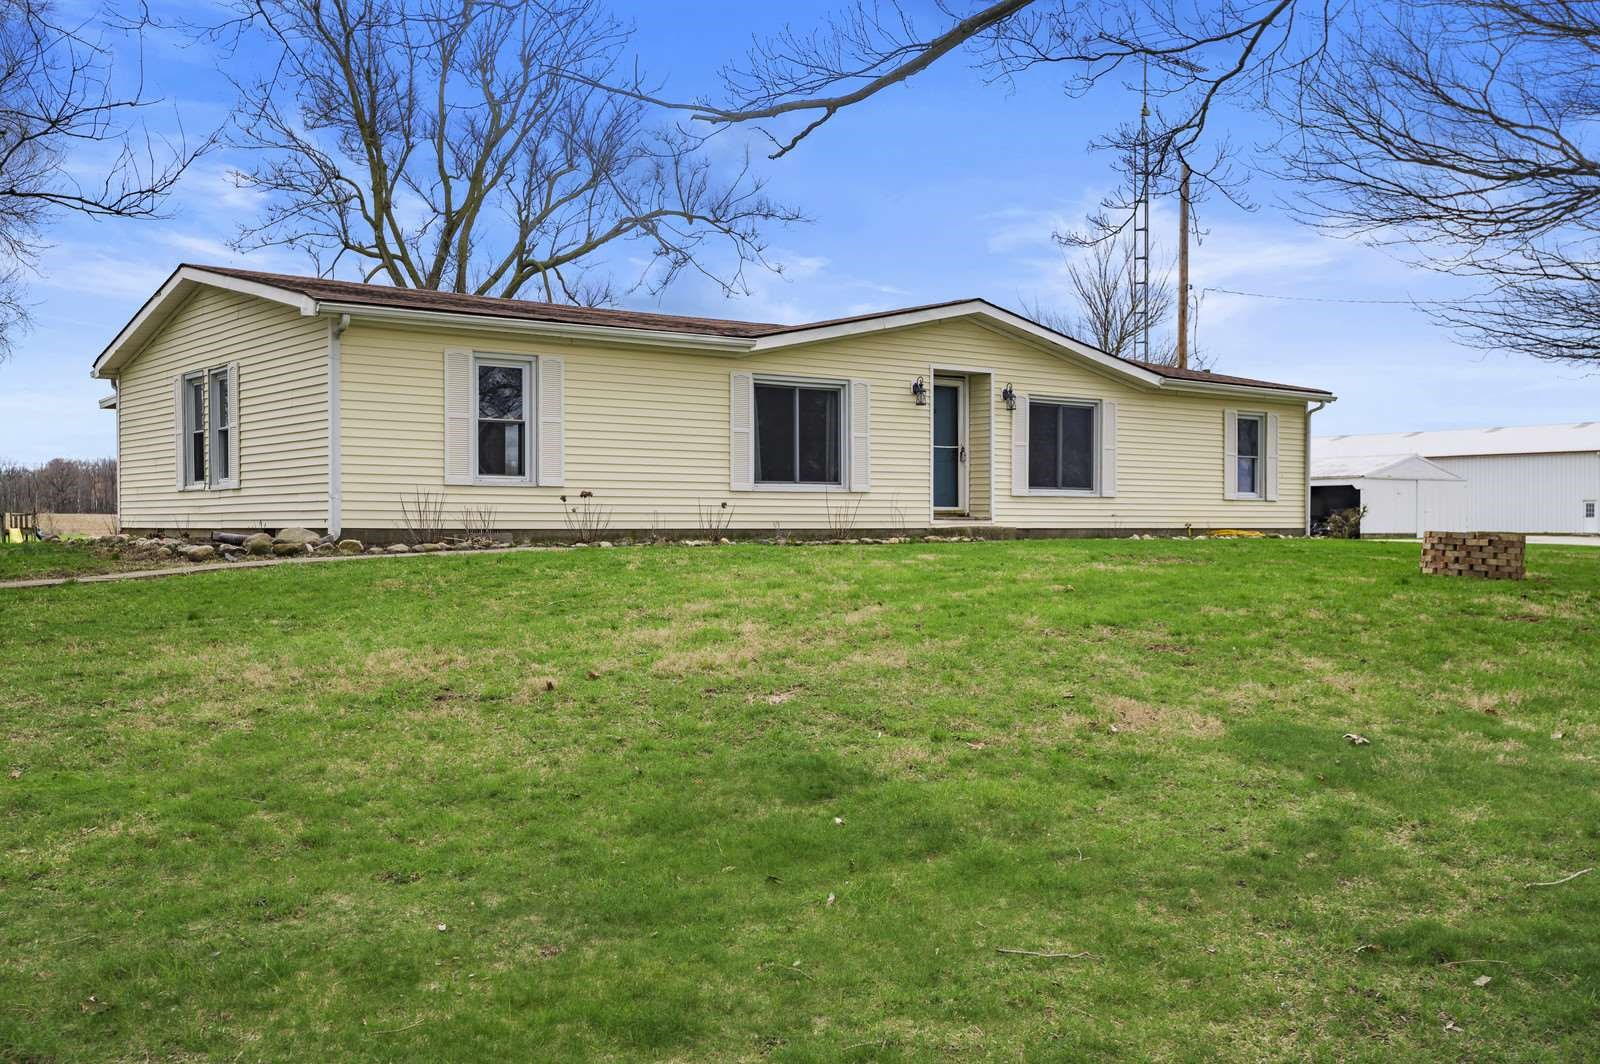 Home for Sale Selma, IN